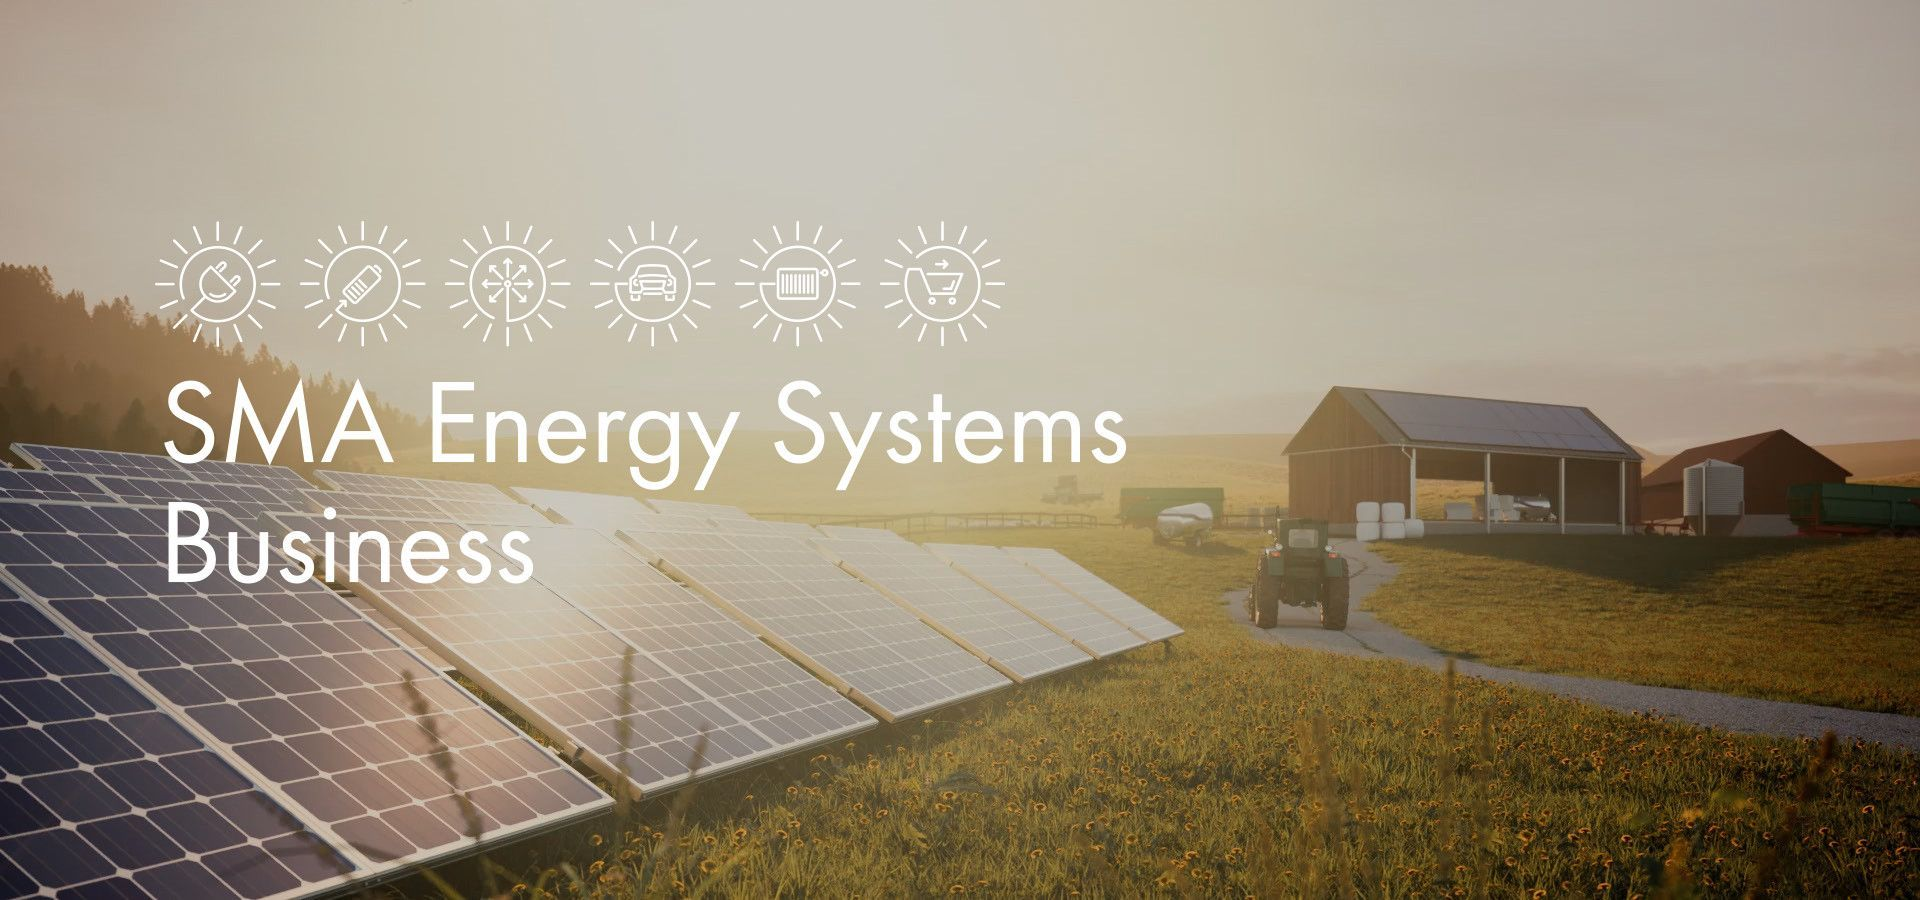 SMA Energy System Business